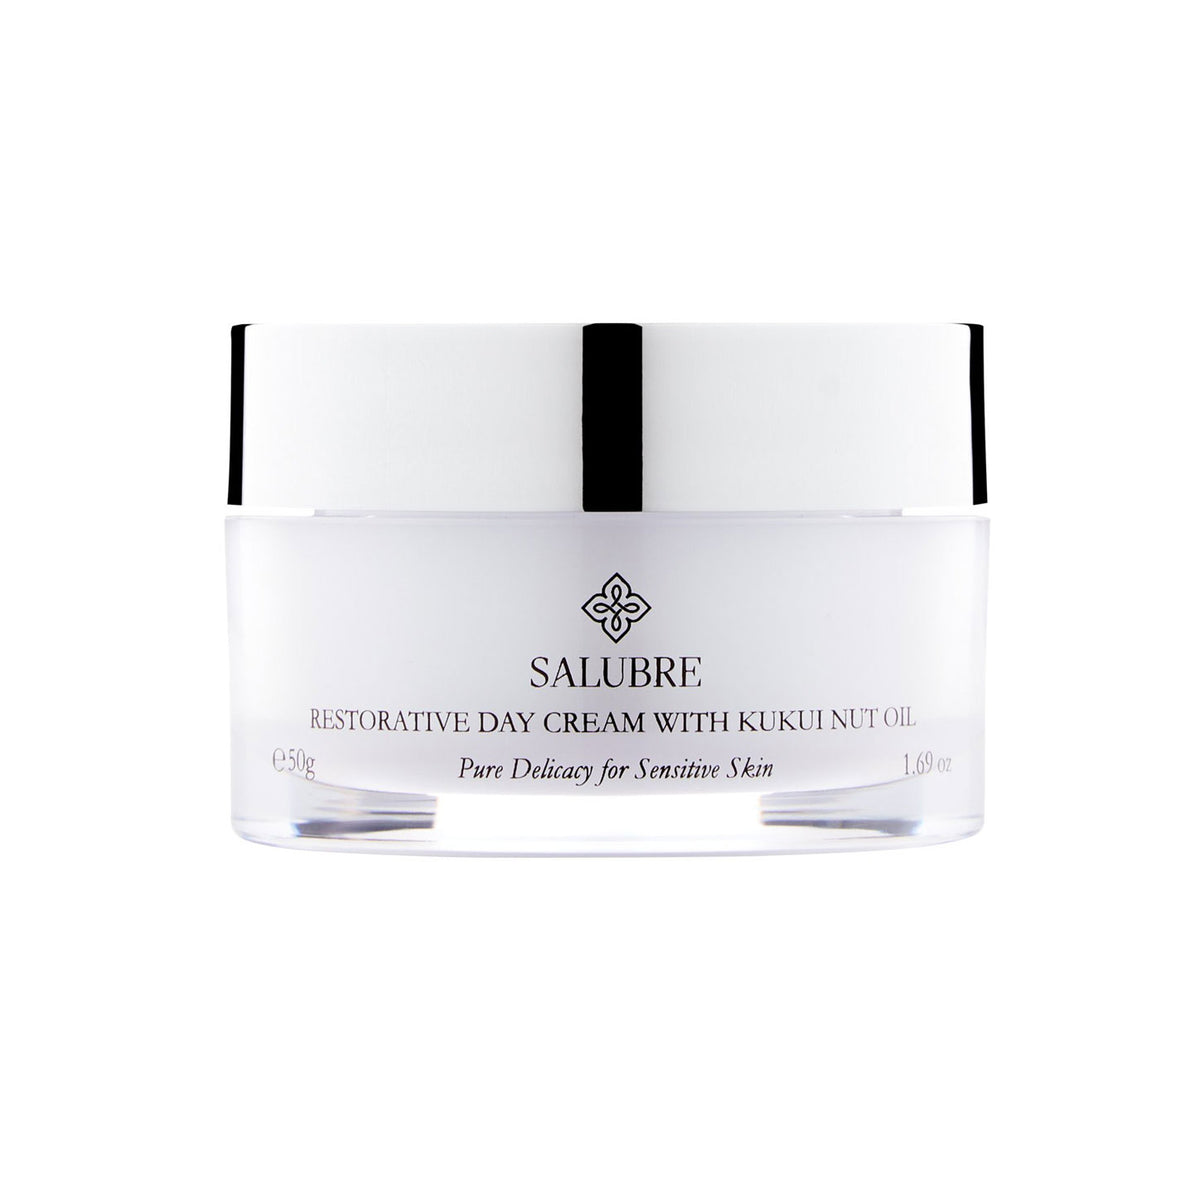 Restorative Day Cream For Sensitive Skin